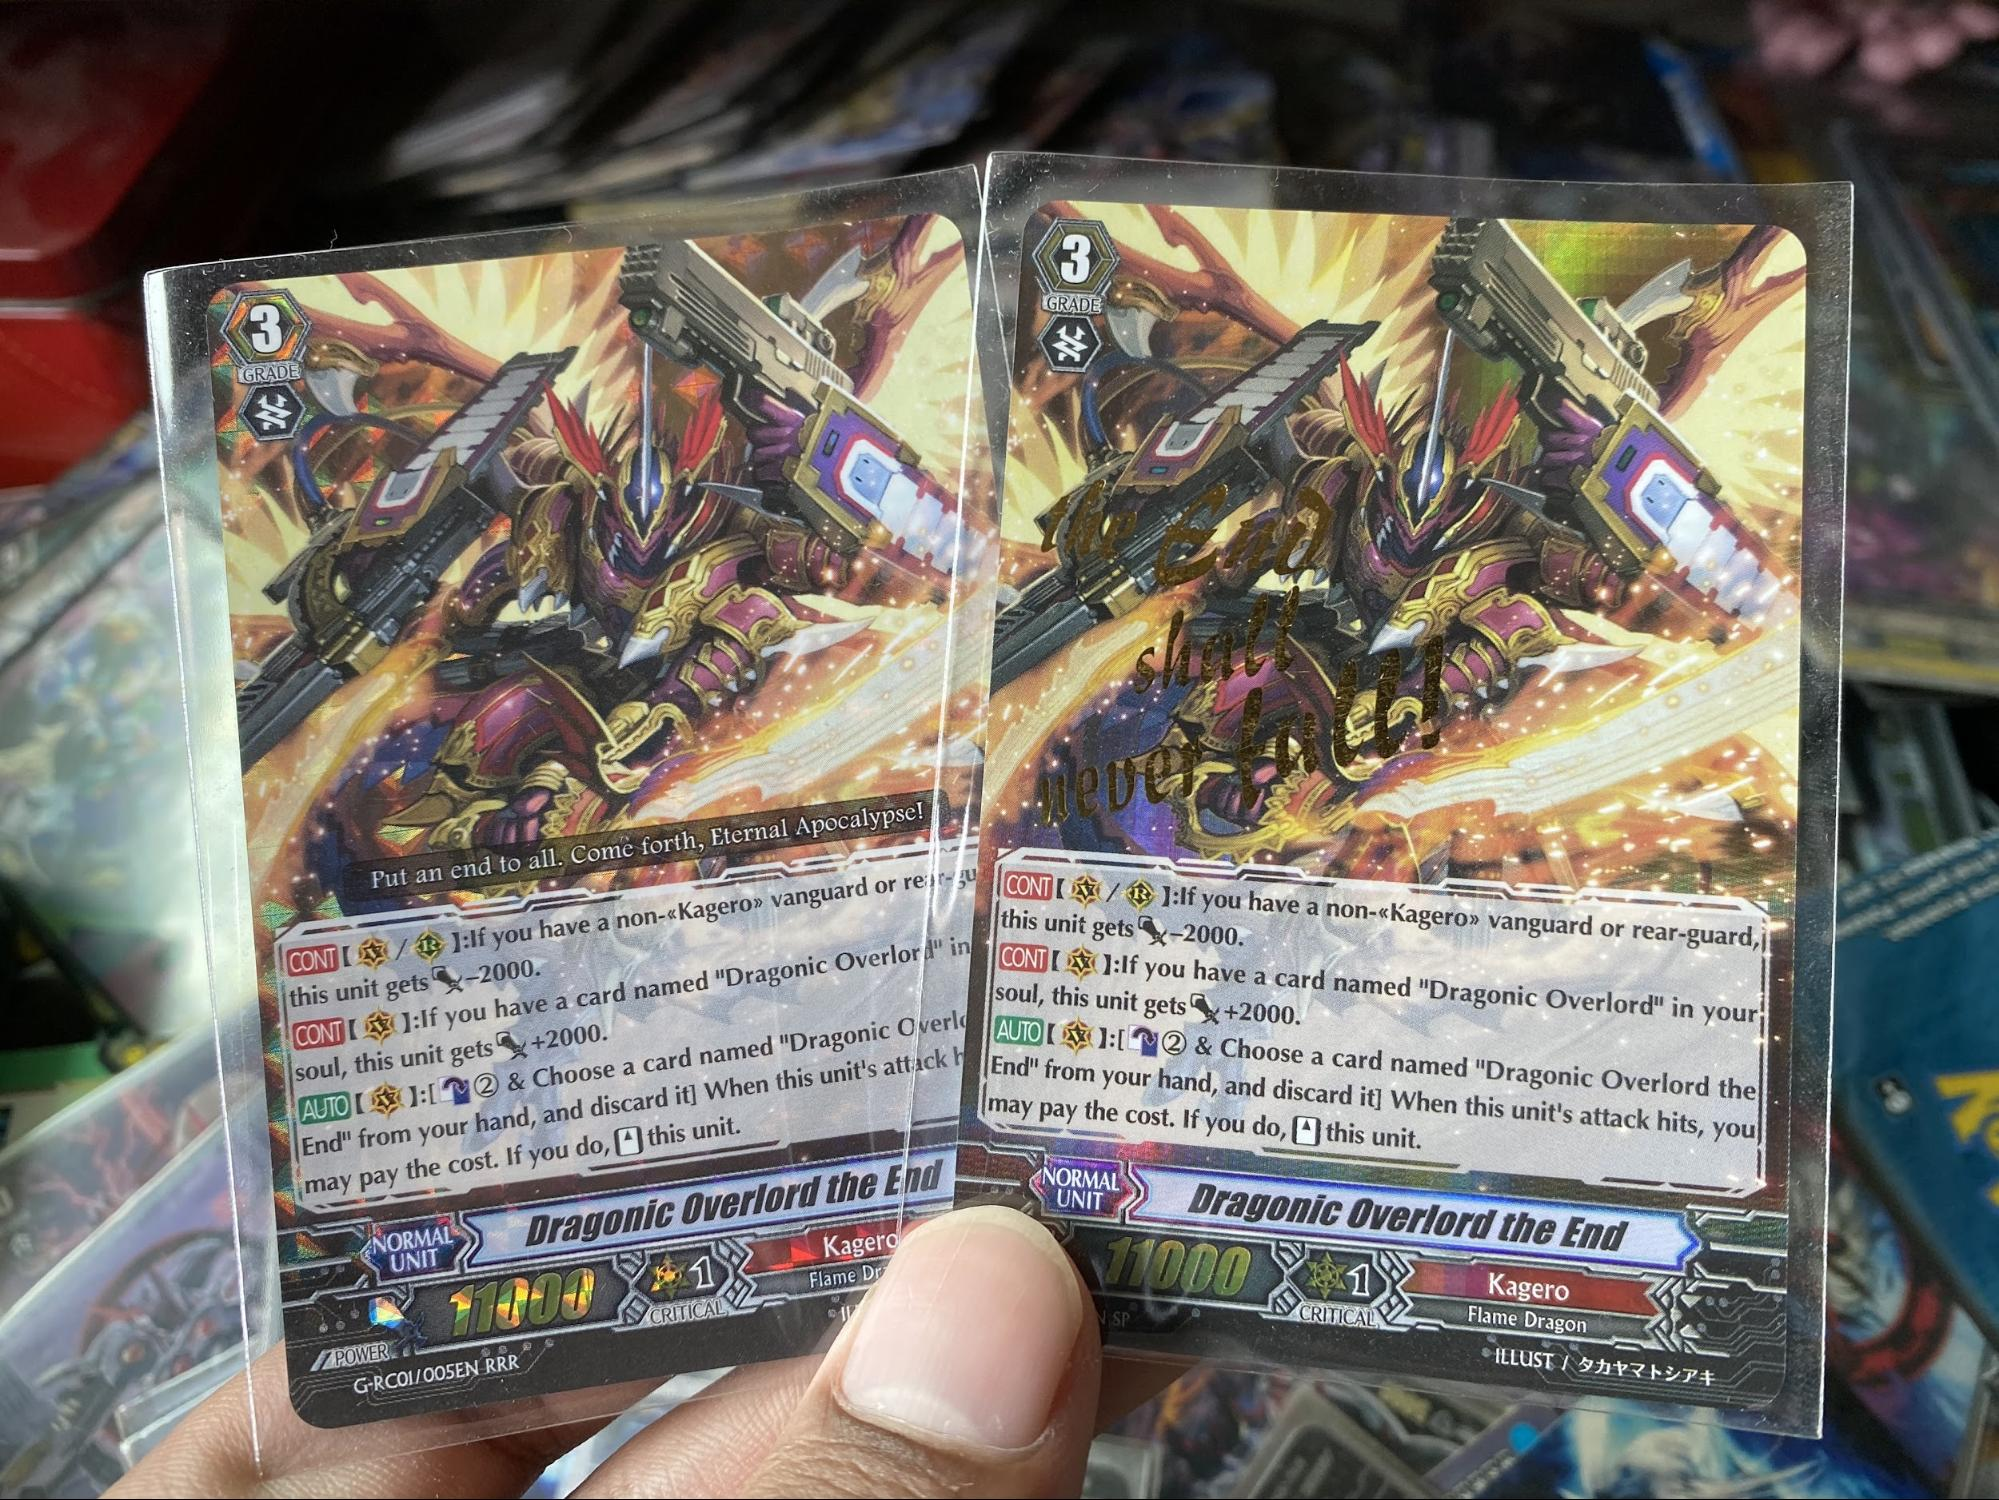 Cardfight! Vanguard special cards